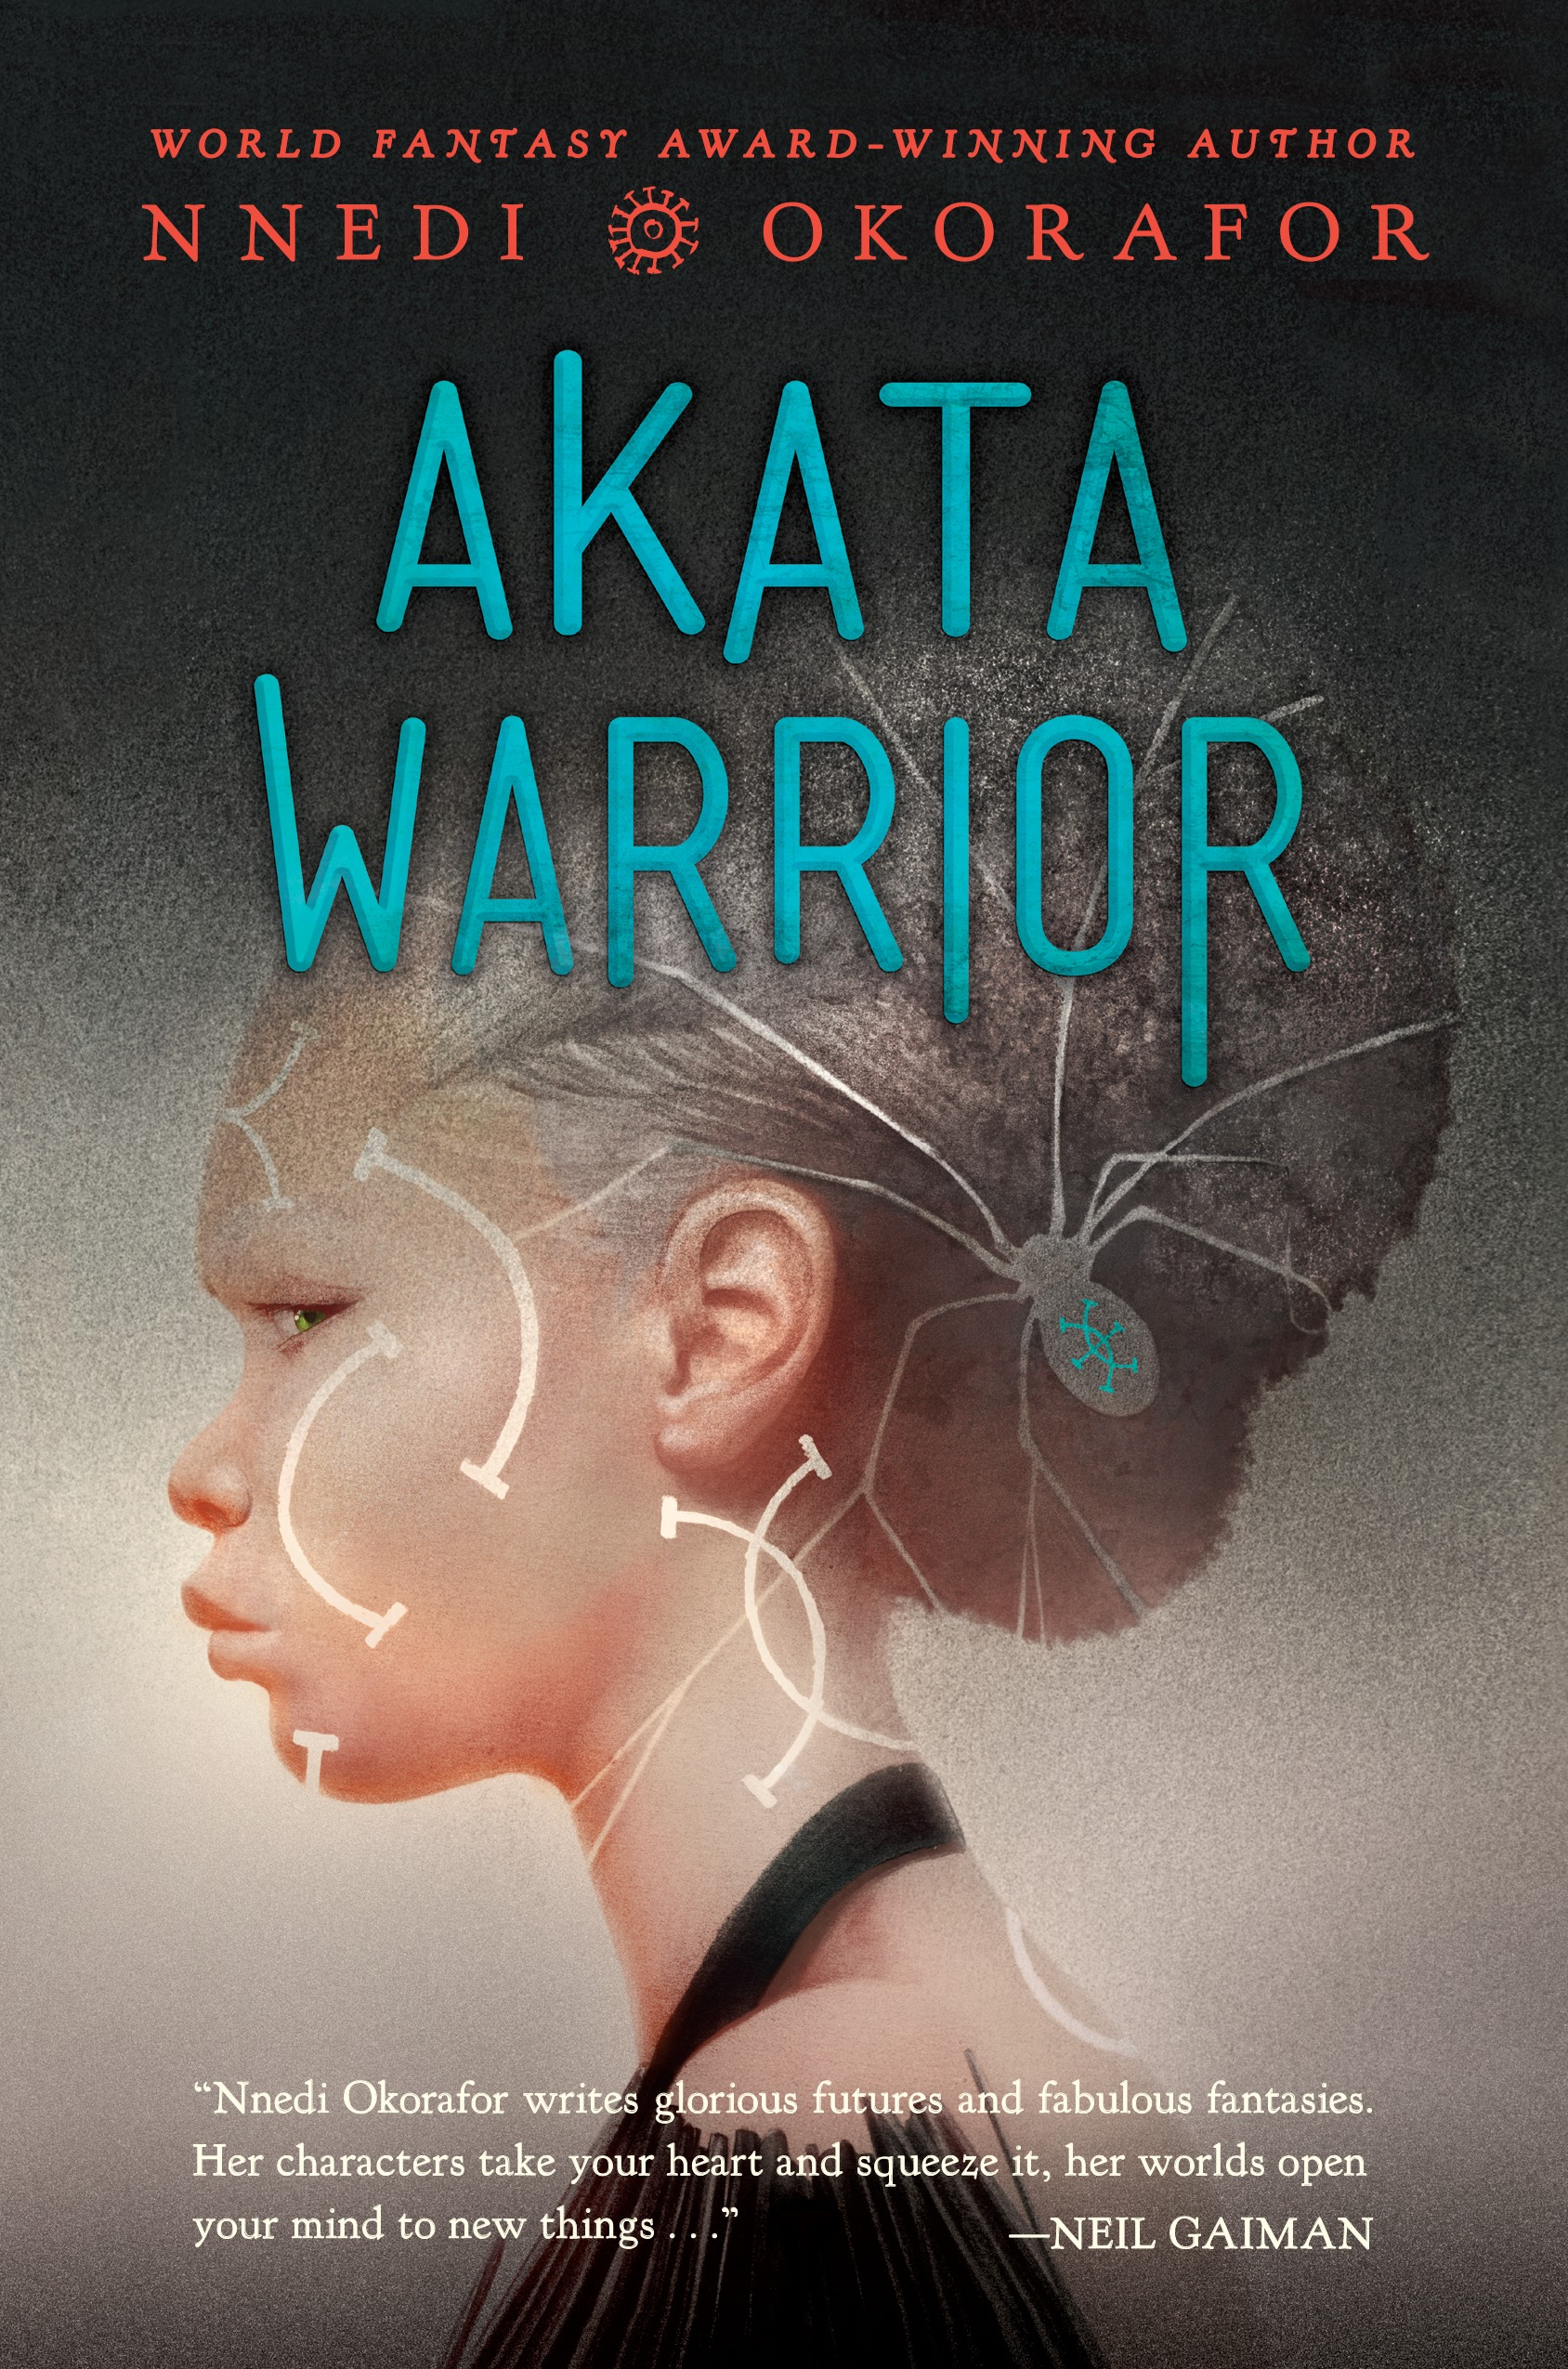 Blog Tour Review + #Giveaway – Akata Warrior by Nnedi Okorafor